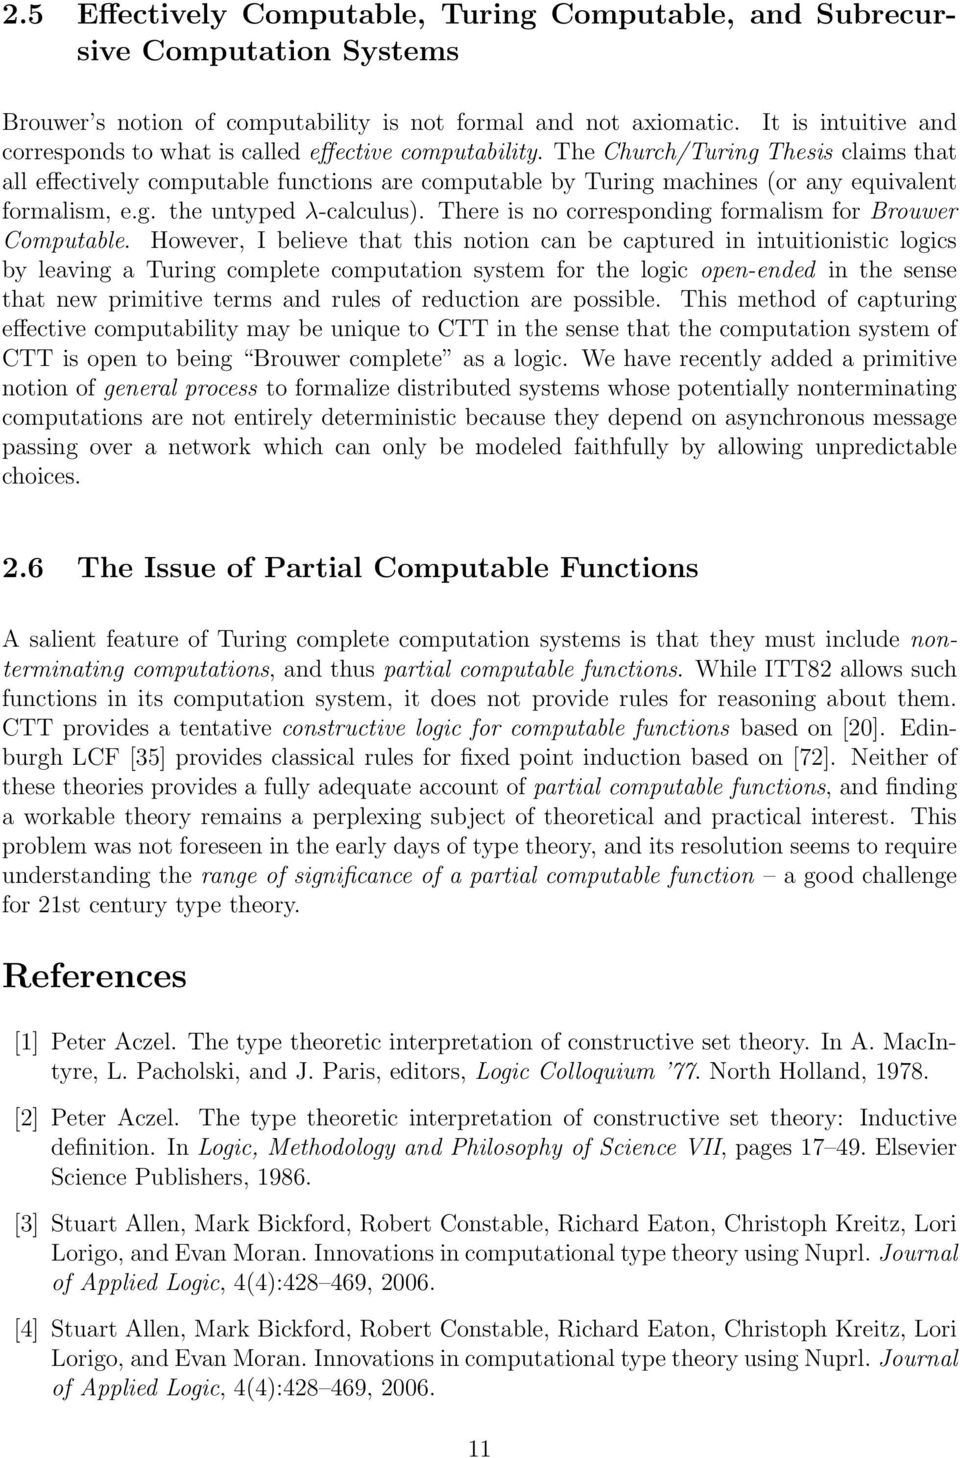 The Church/Turing Thesis claims that all effectively computable functions are computable by Turing machines (or any equivalent formalism, e.g. the untyped λ-calculus).